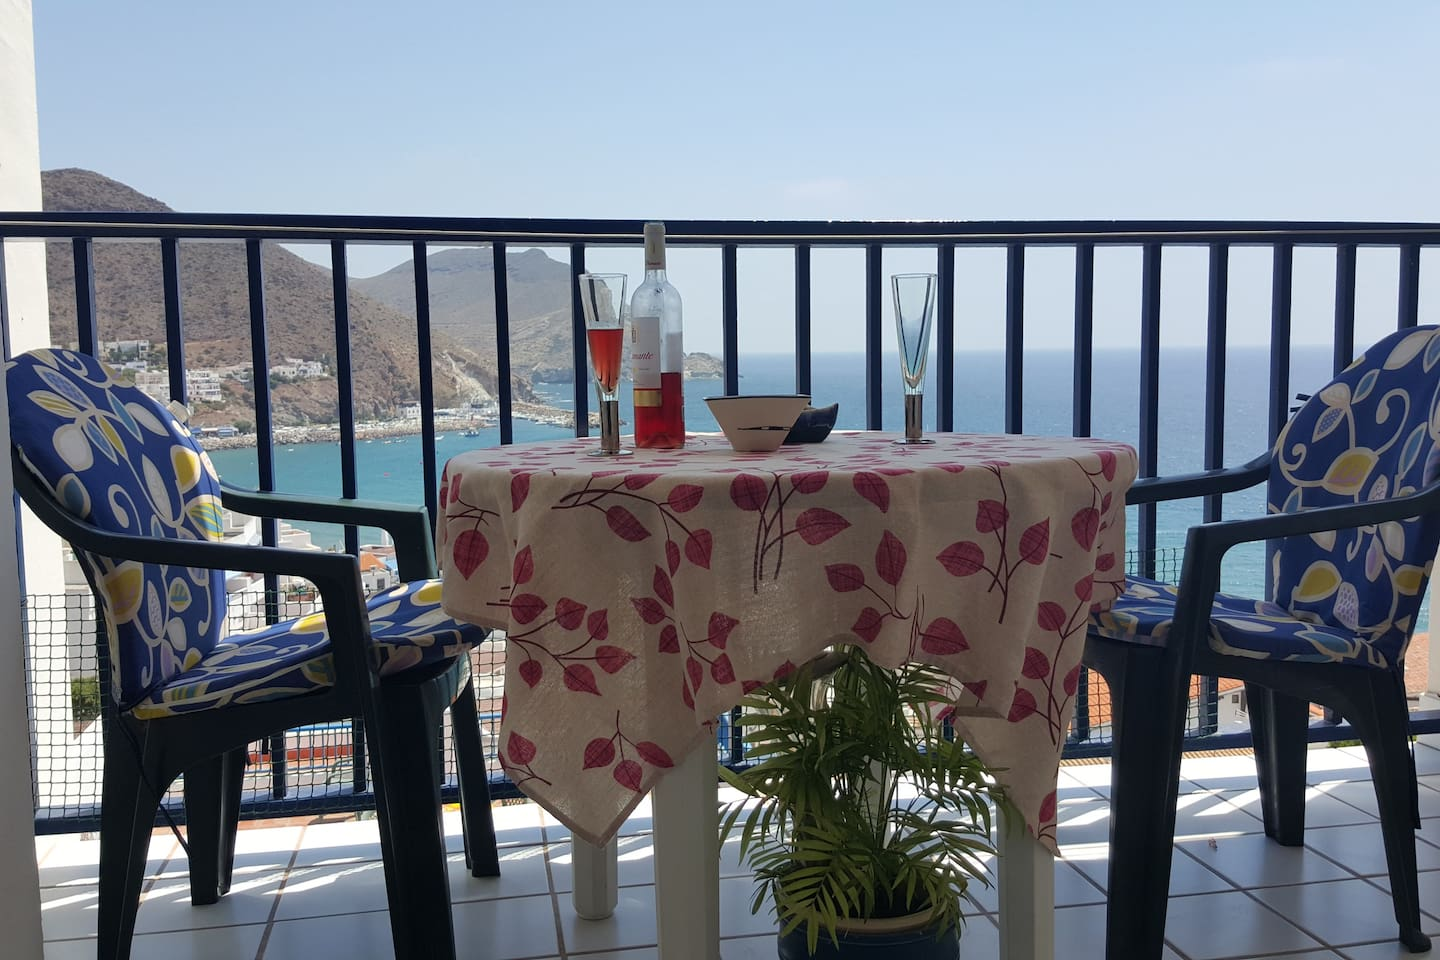 Enjoy an aperitivo with sea view from the balcony.